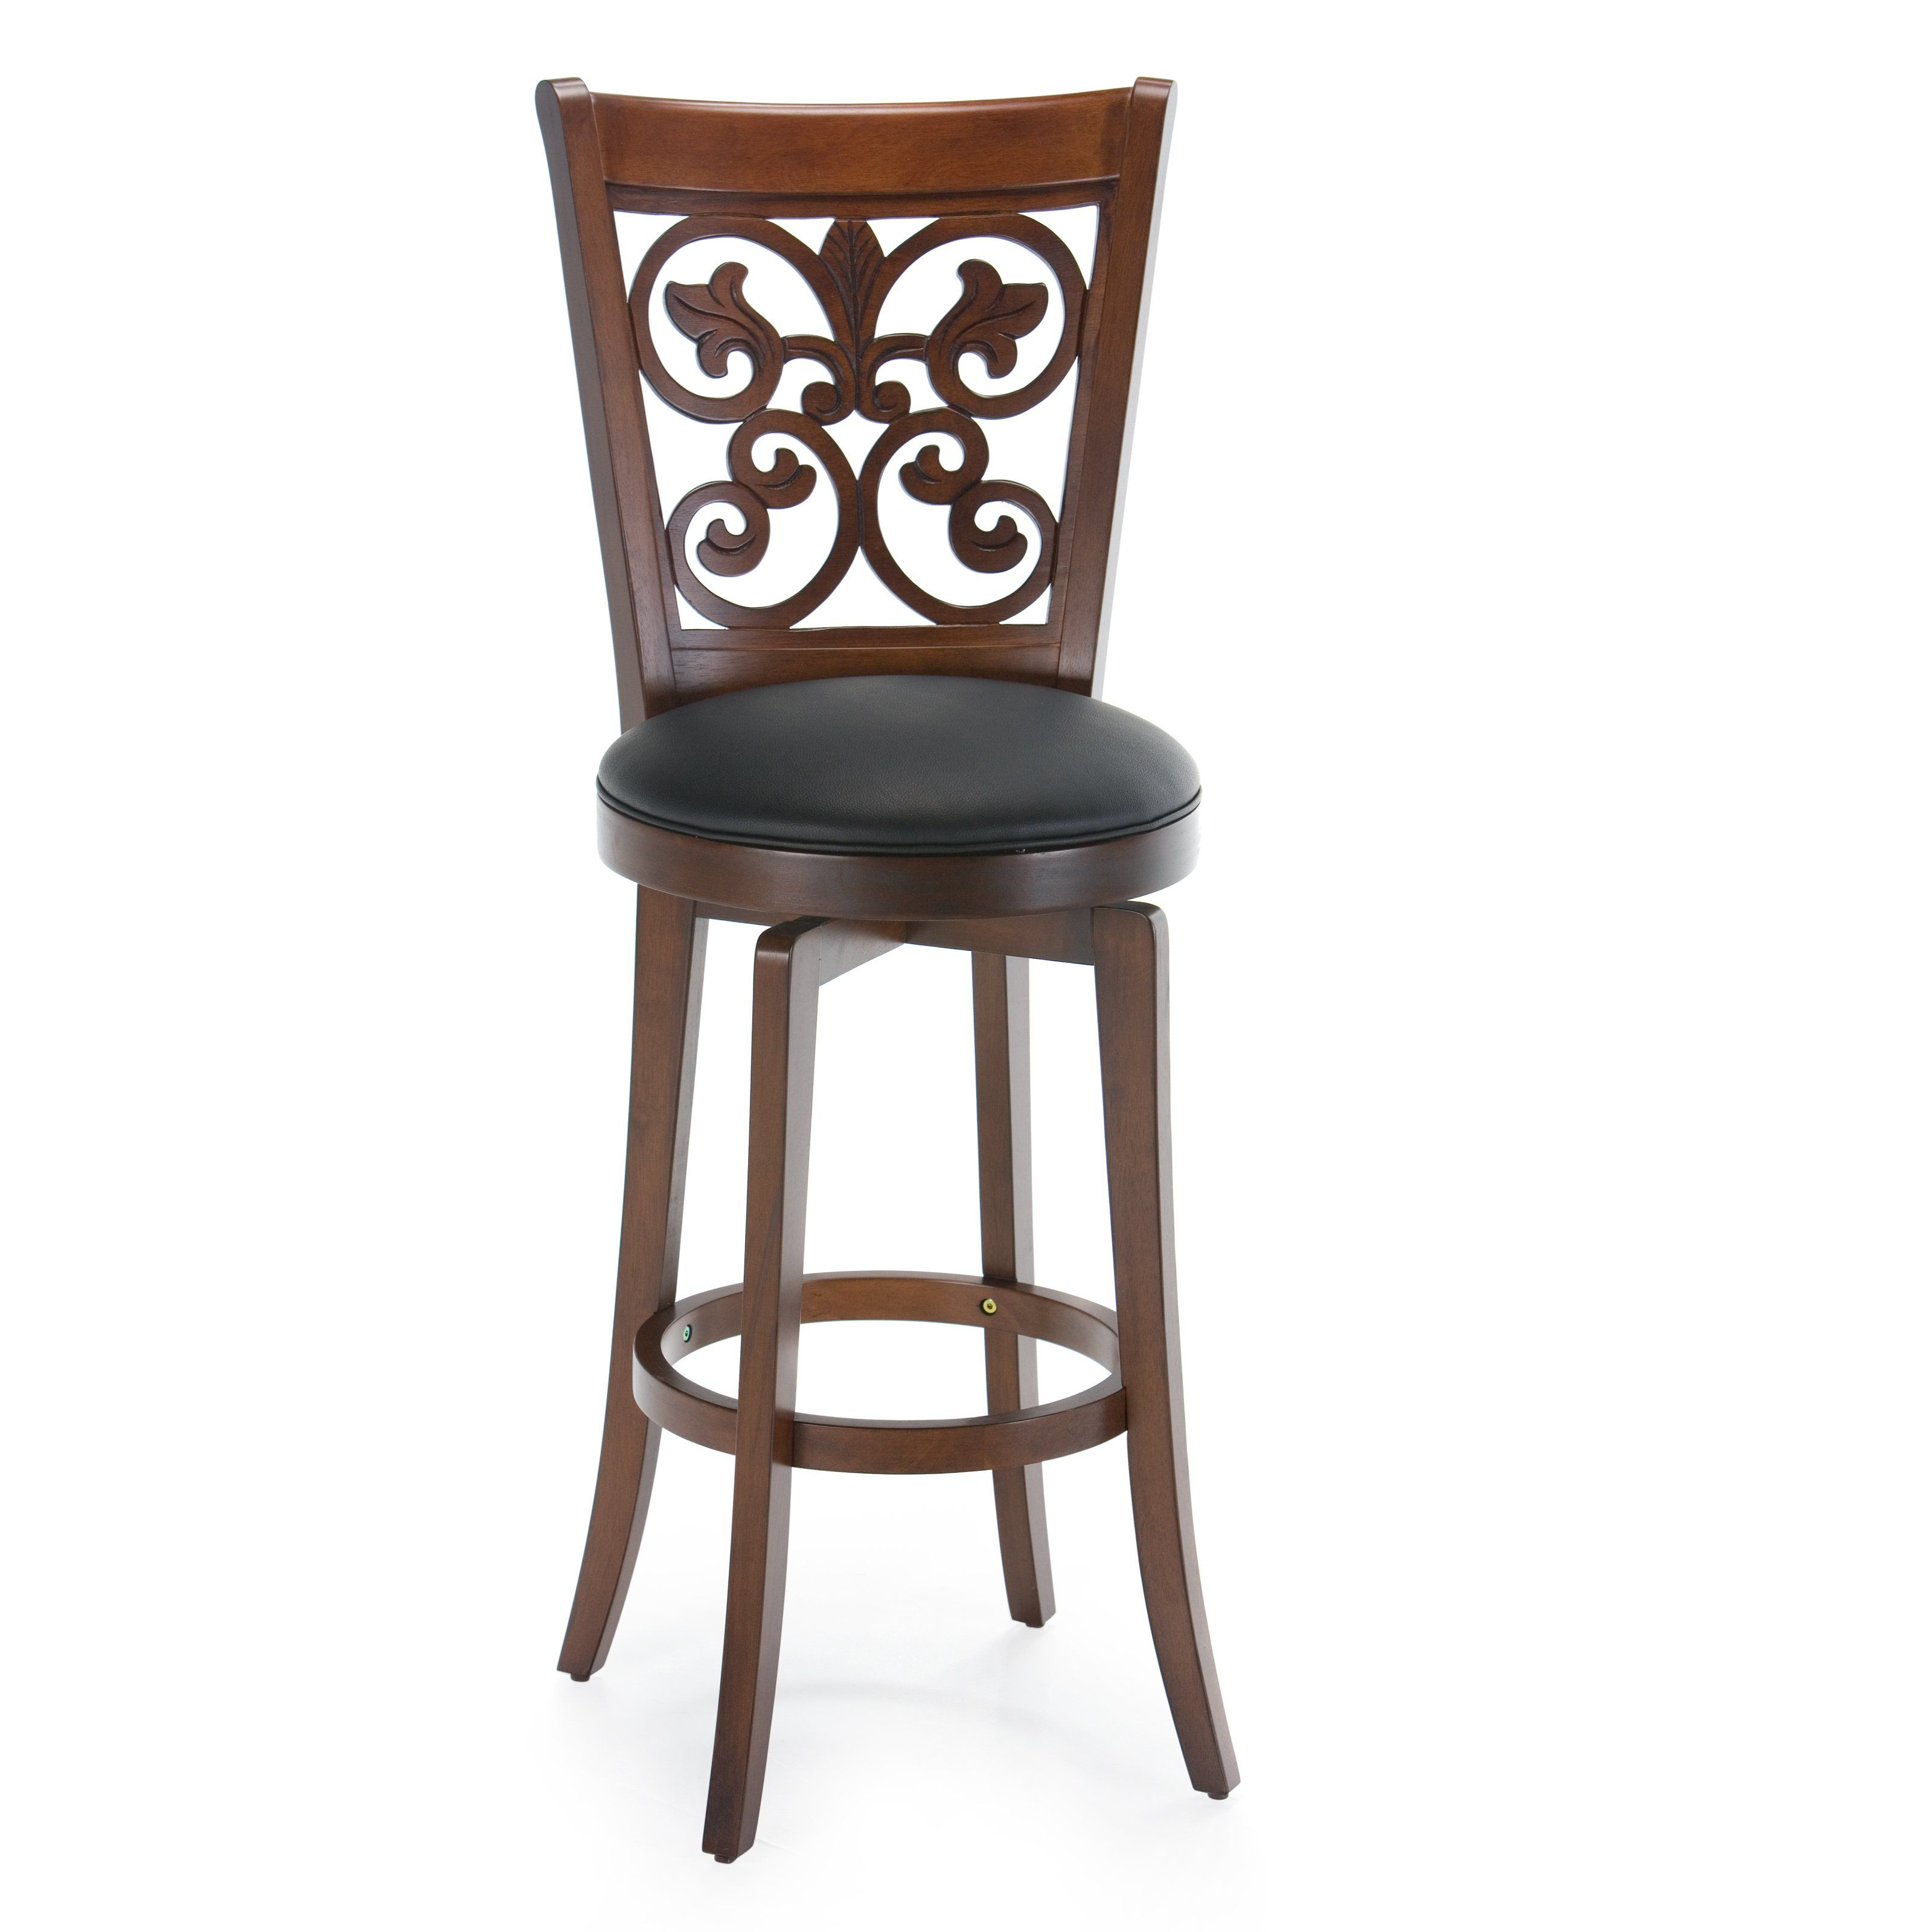 Have To Have It Hillsdale 30 Inch Bonaire Swivel Bar Stool Brown Cherry 139 99 Swivel Bar Stools Bar Stools With Backs Bar Stools